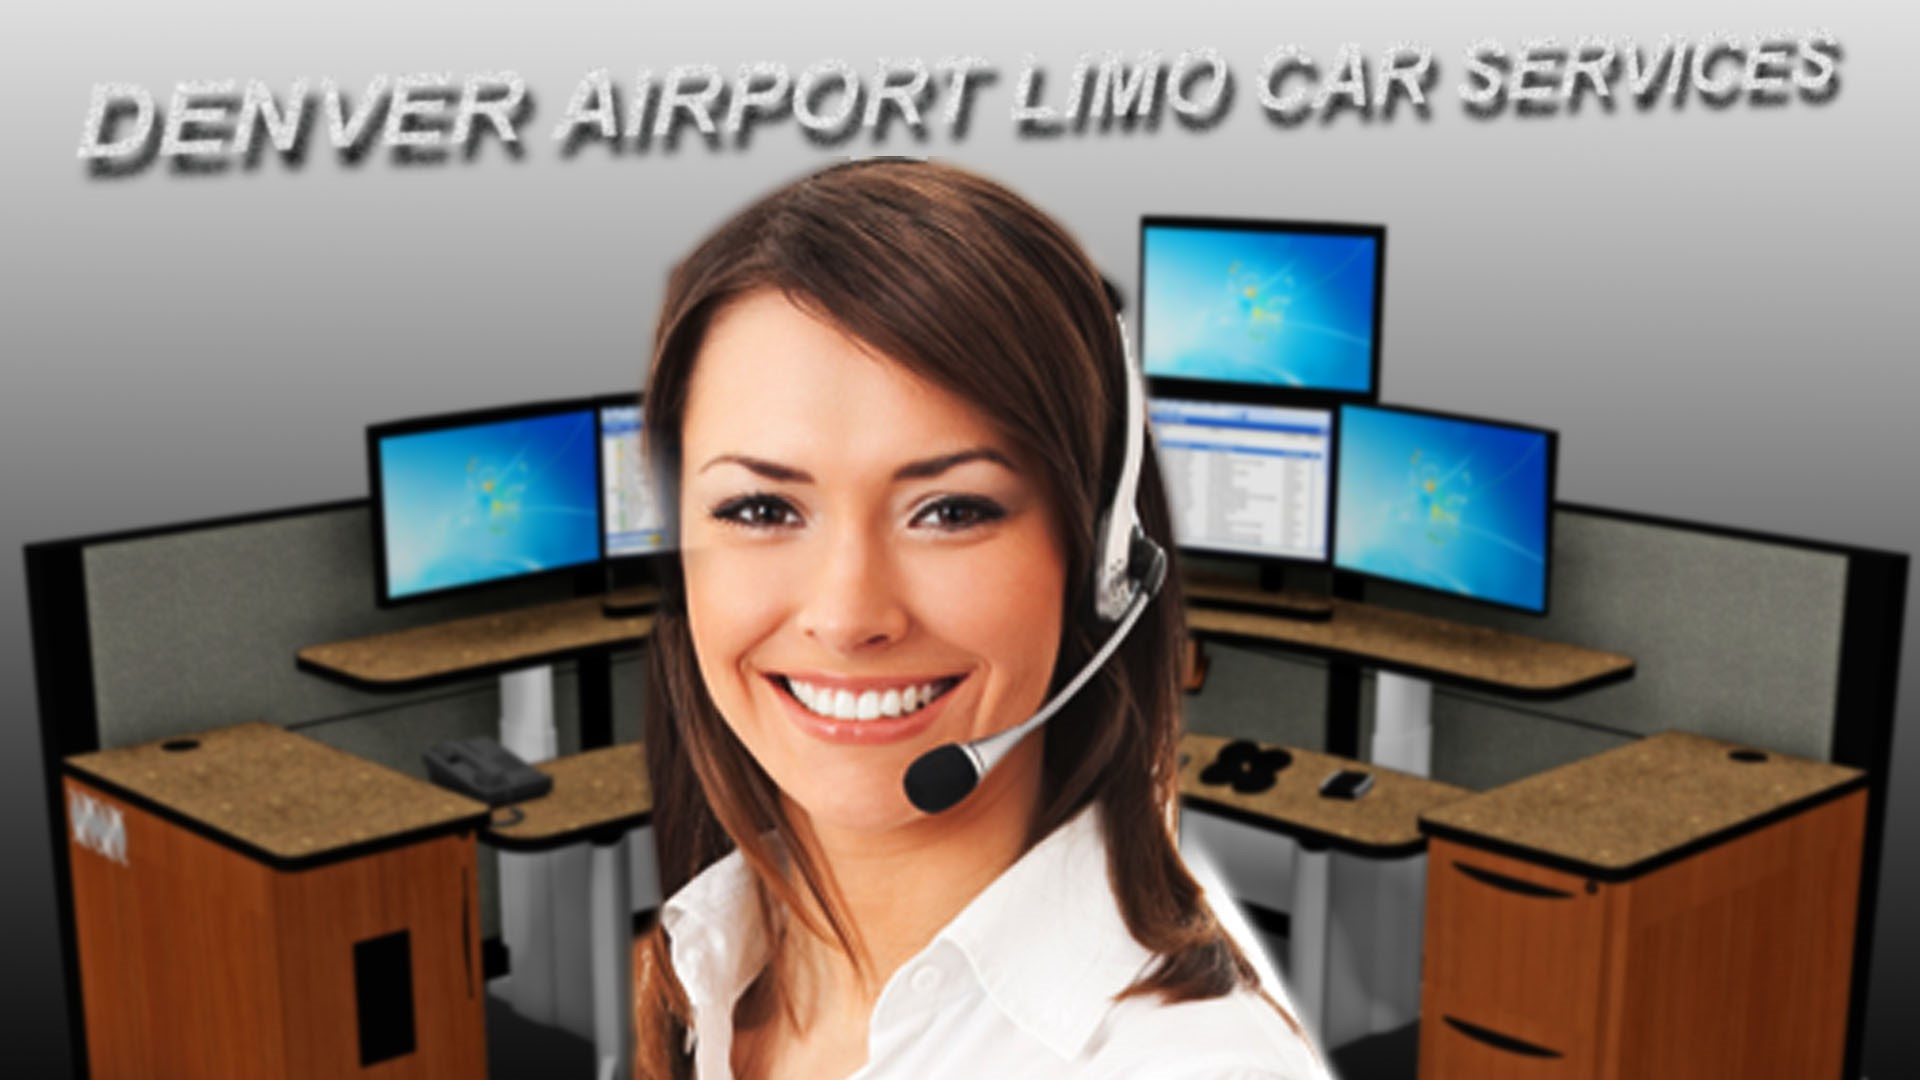 Denver Airport Car Service